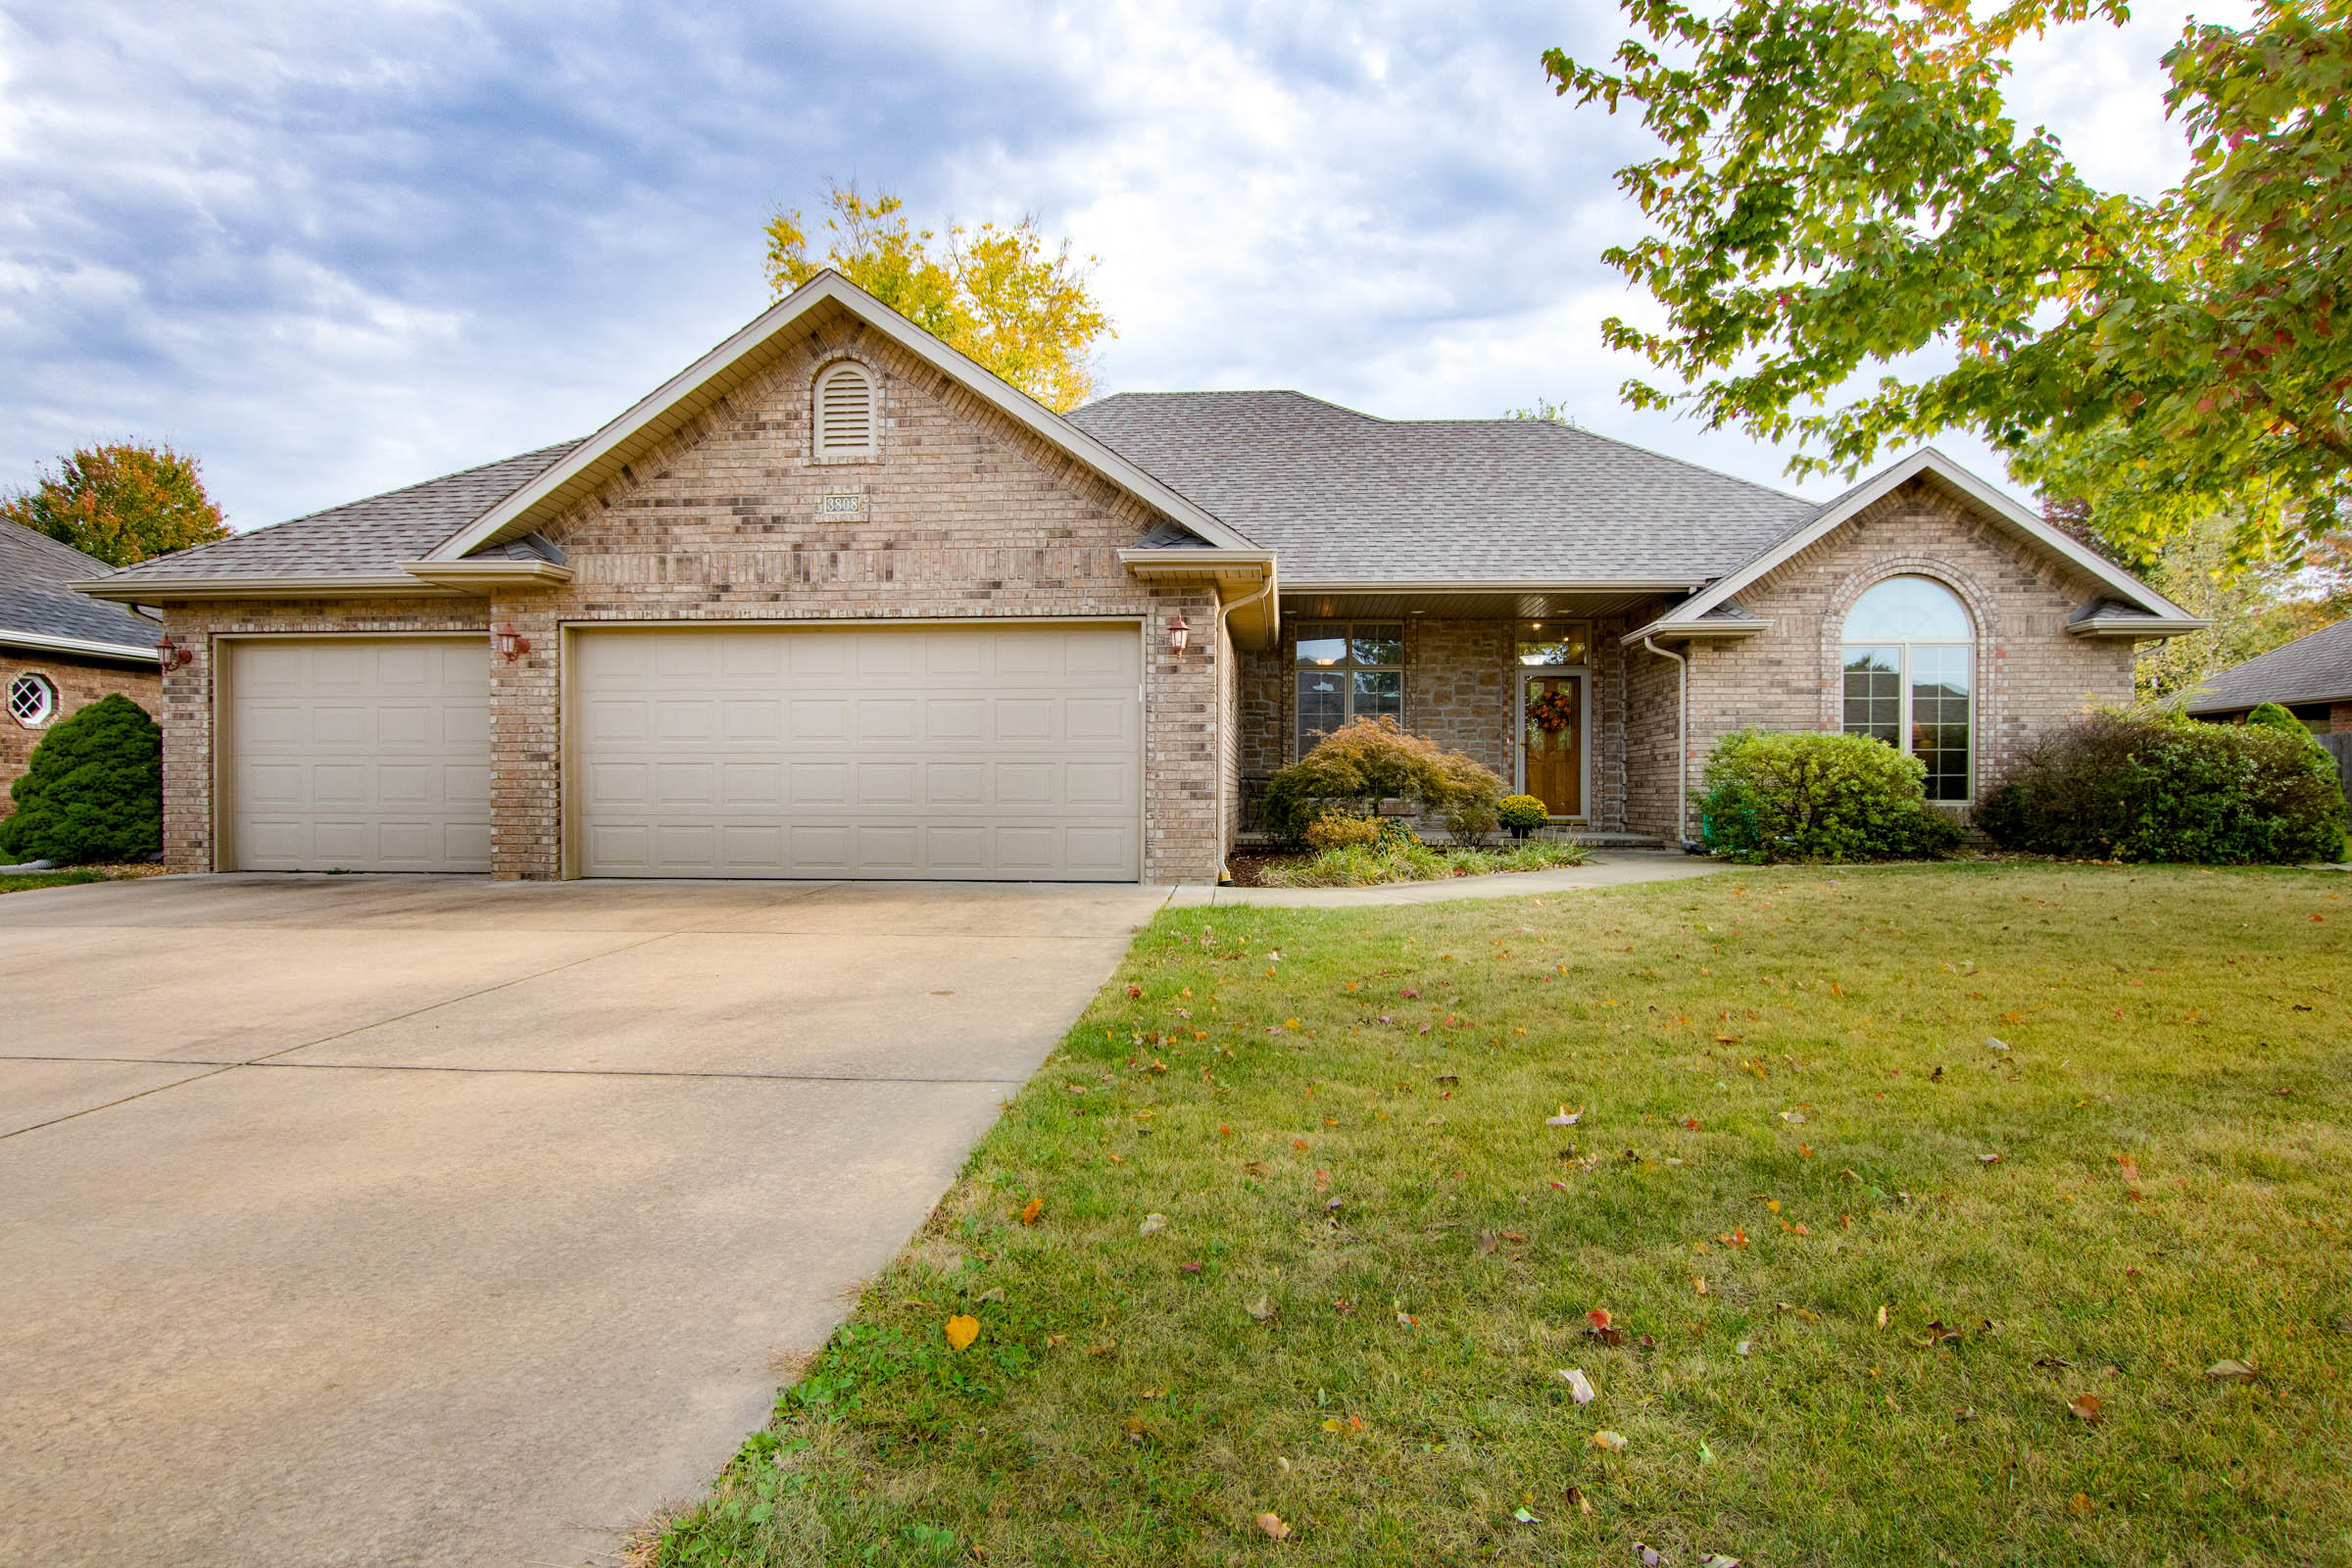 3808 West April Street Battlefield, MO 65619